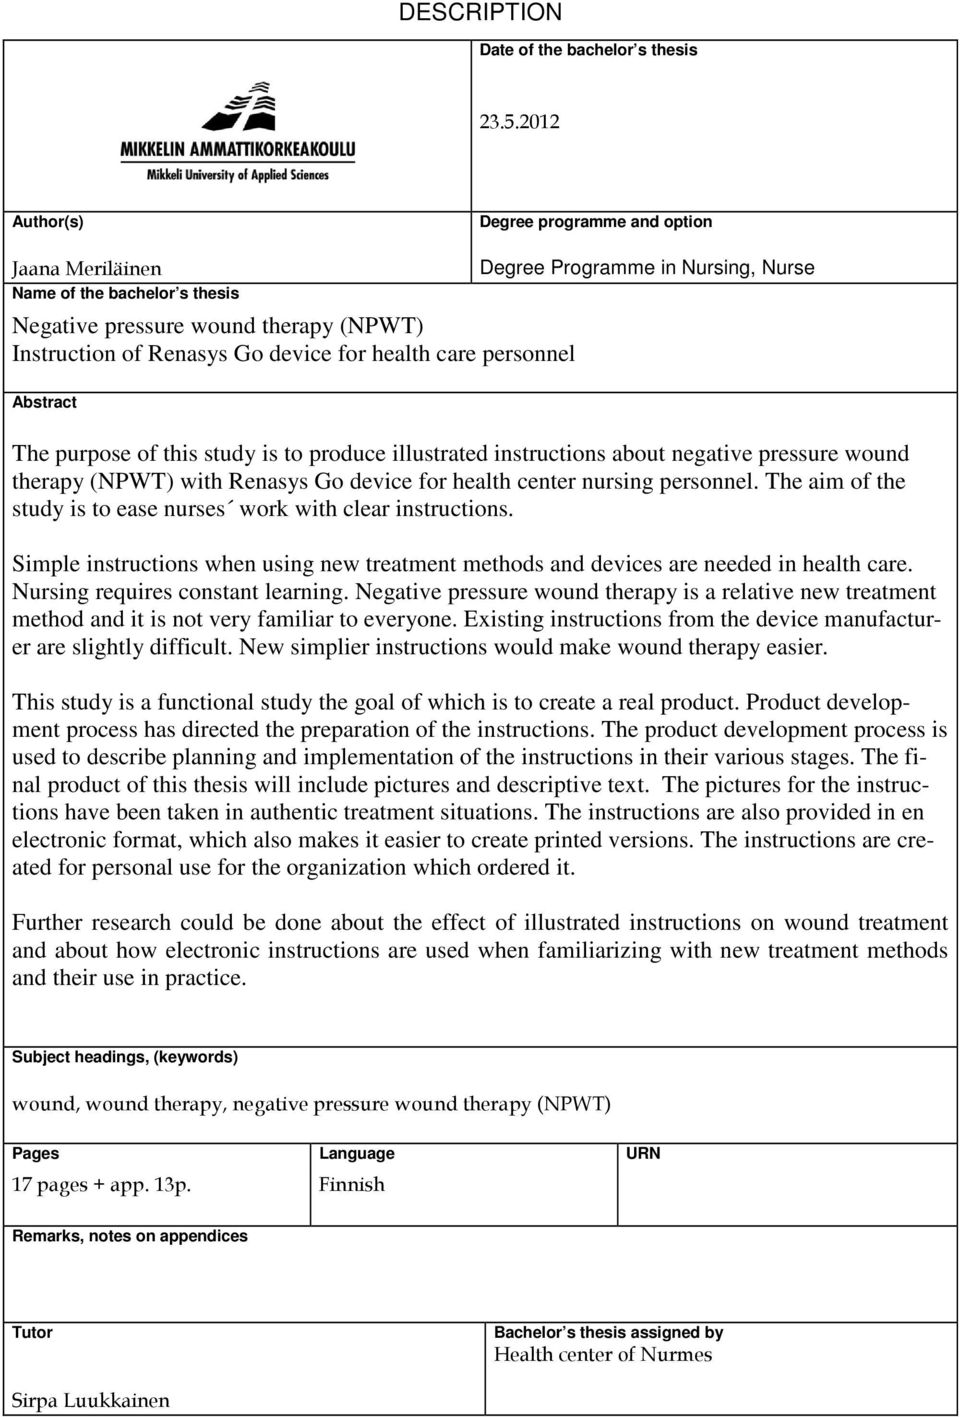 Programme in Nursing, Nurse Abstract The purpose of this study is to produce illustrated instructions about negative pressure wound therapy (NPWT) with Renasys Go device for health center nursing